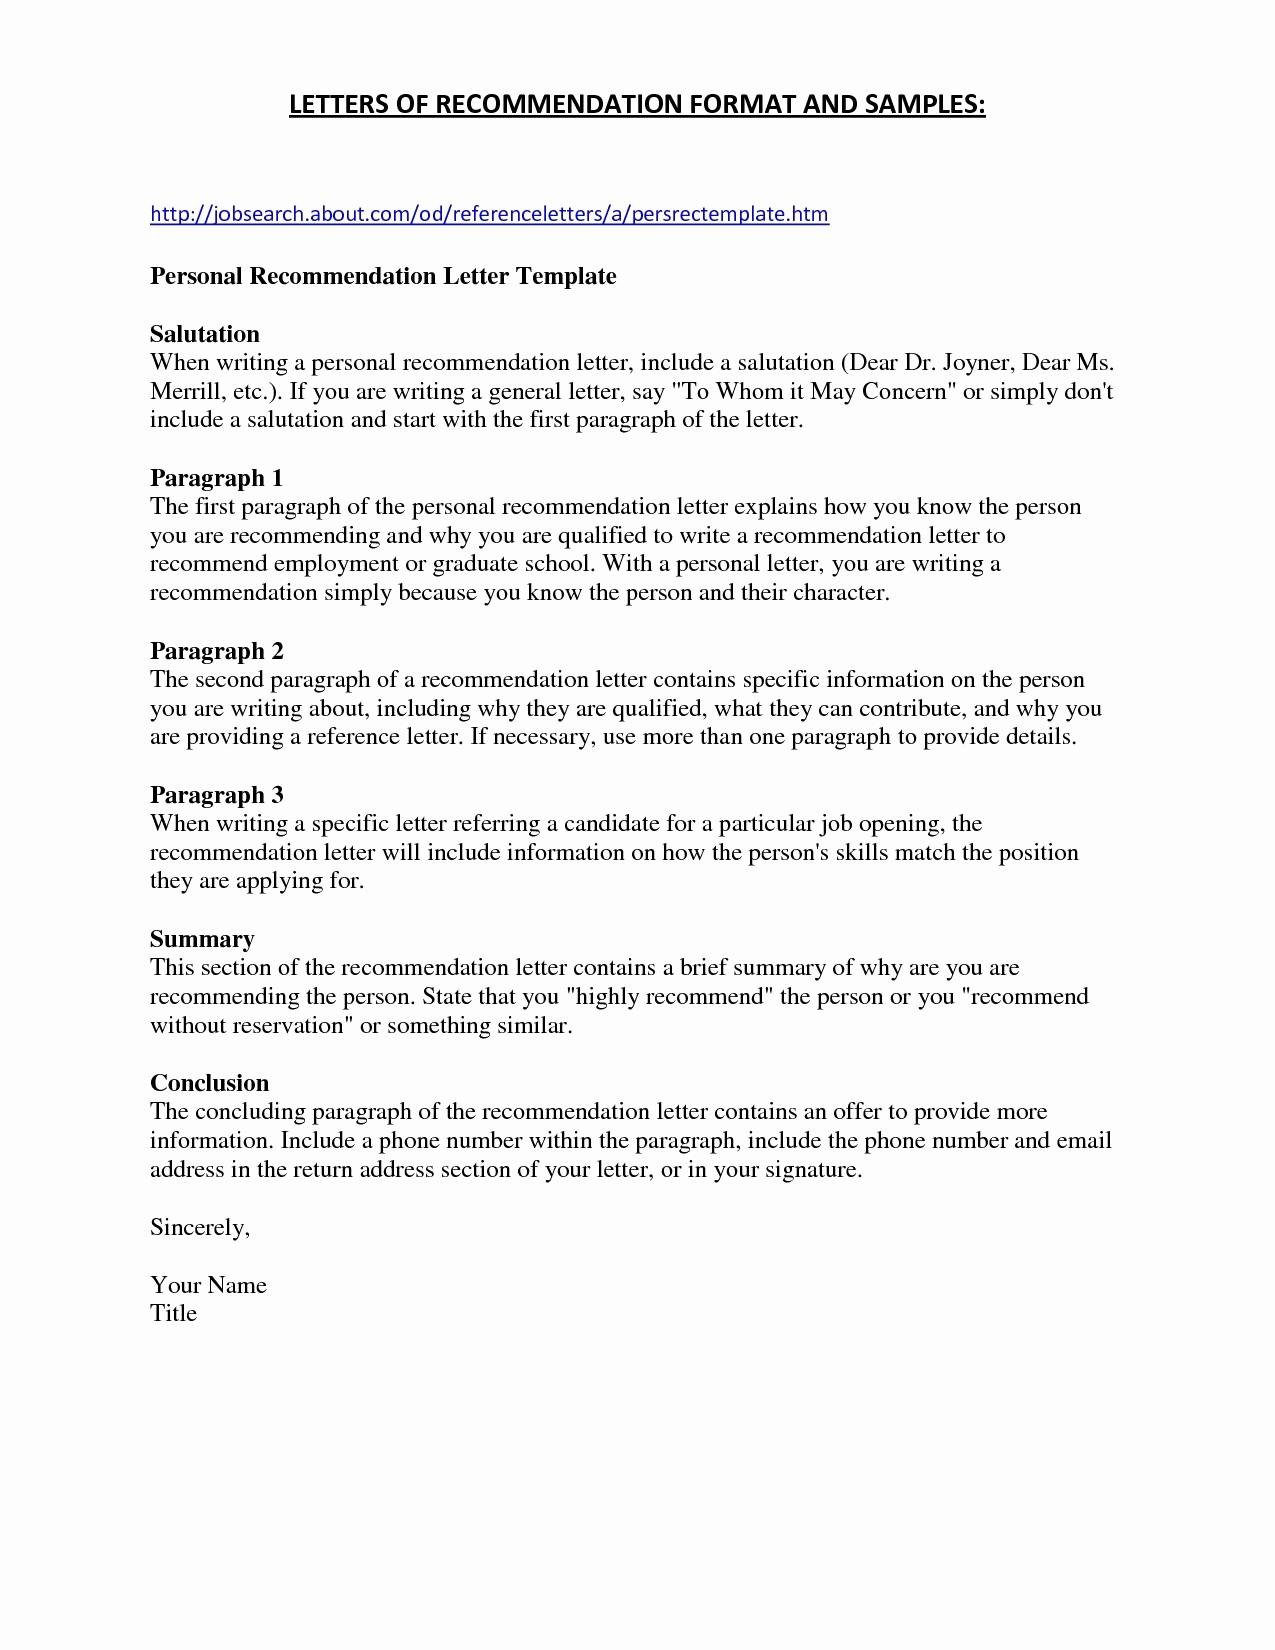 Rent Reduction Letter Template - How to Write A Cover Letter for A Rental Application